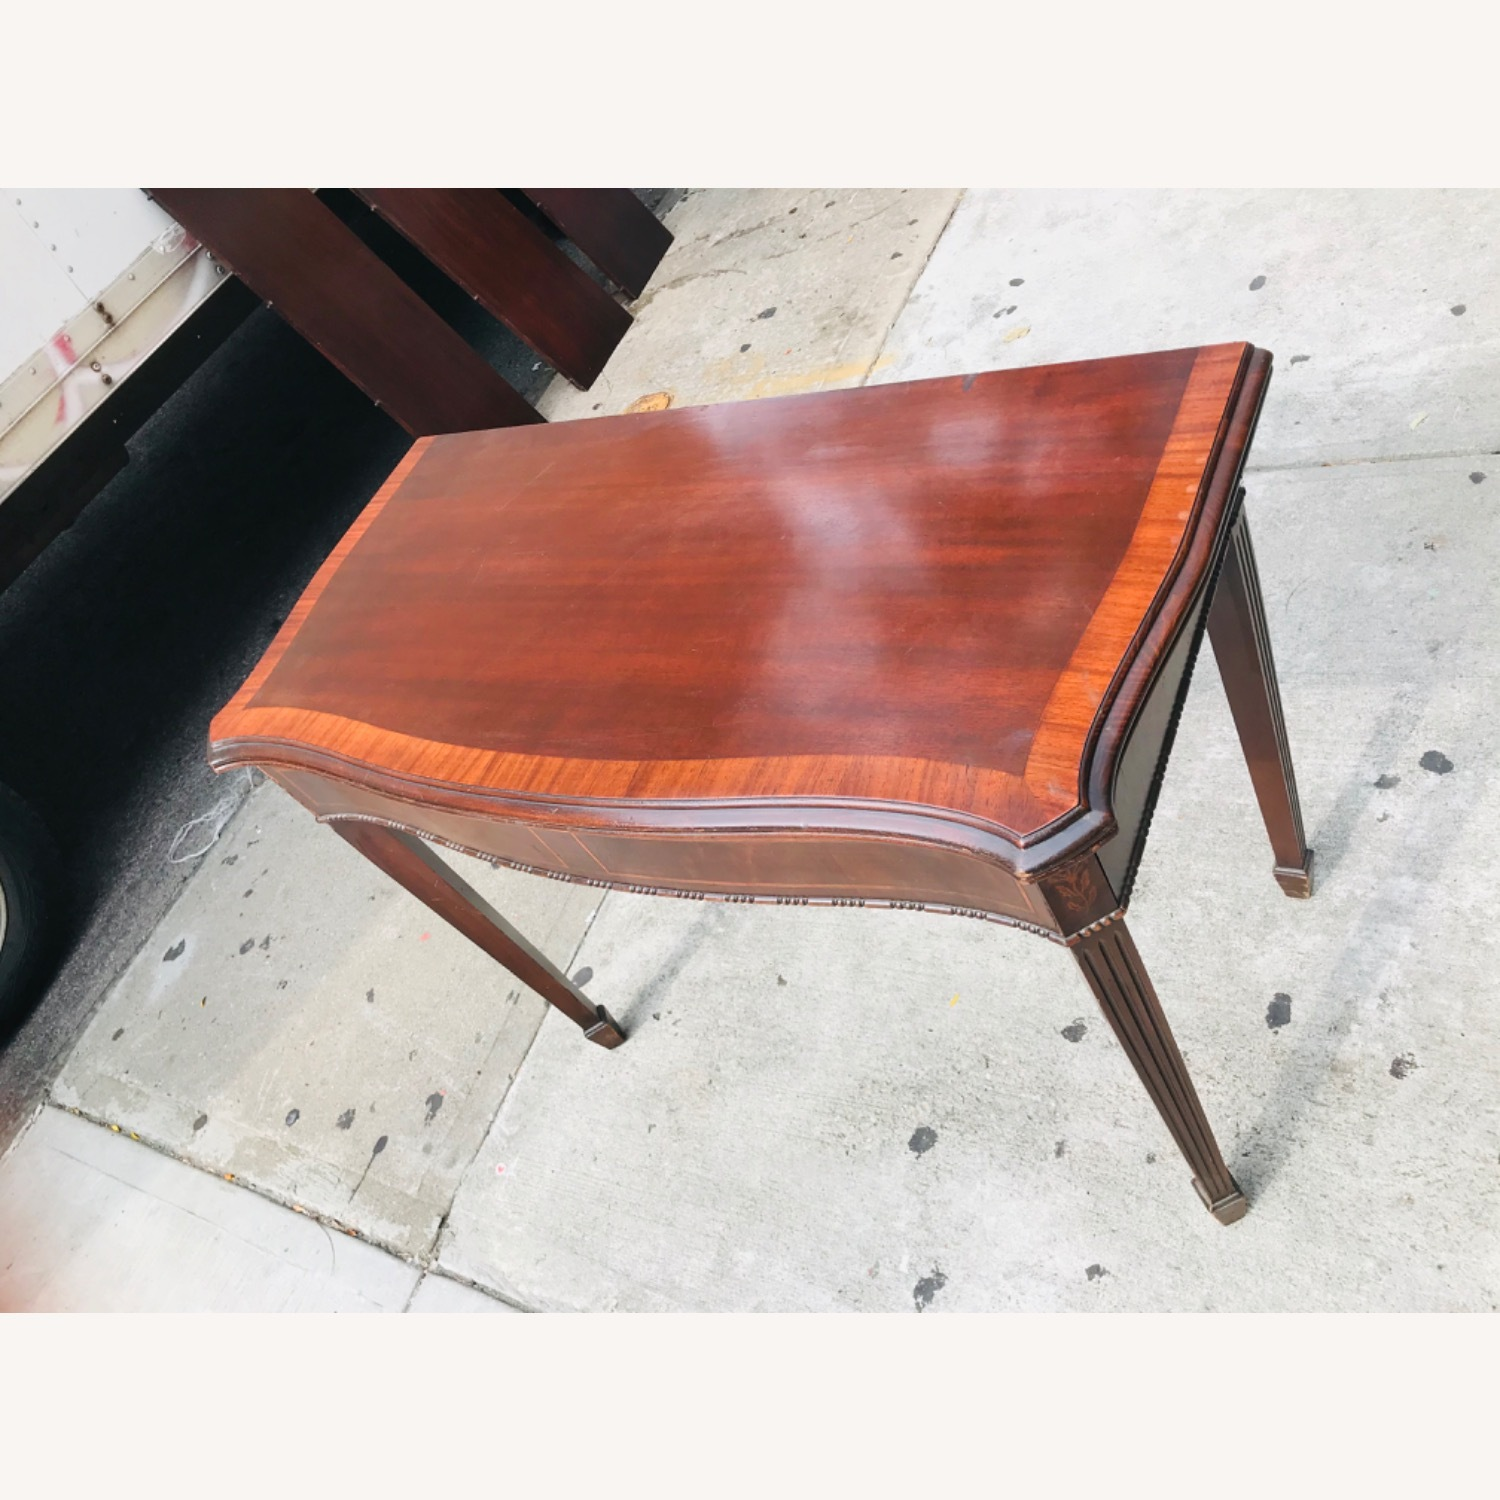 Antique 1920s Mahogany Table w/3 Leaves  - image-7